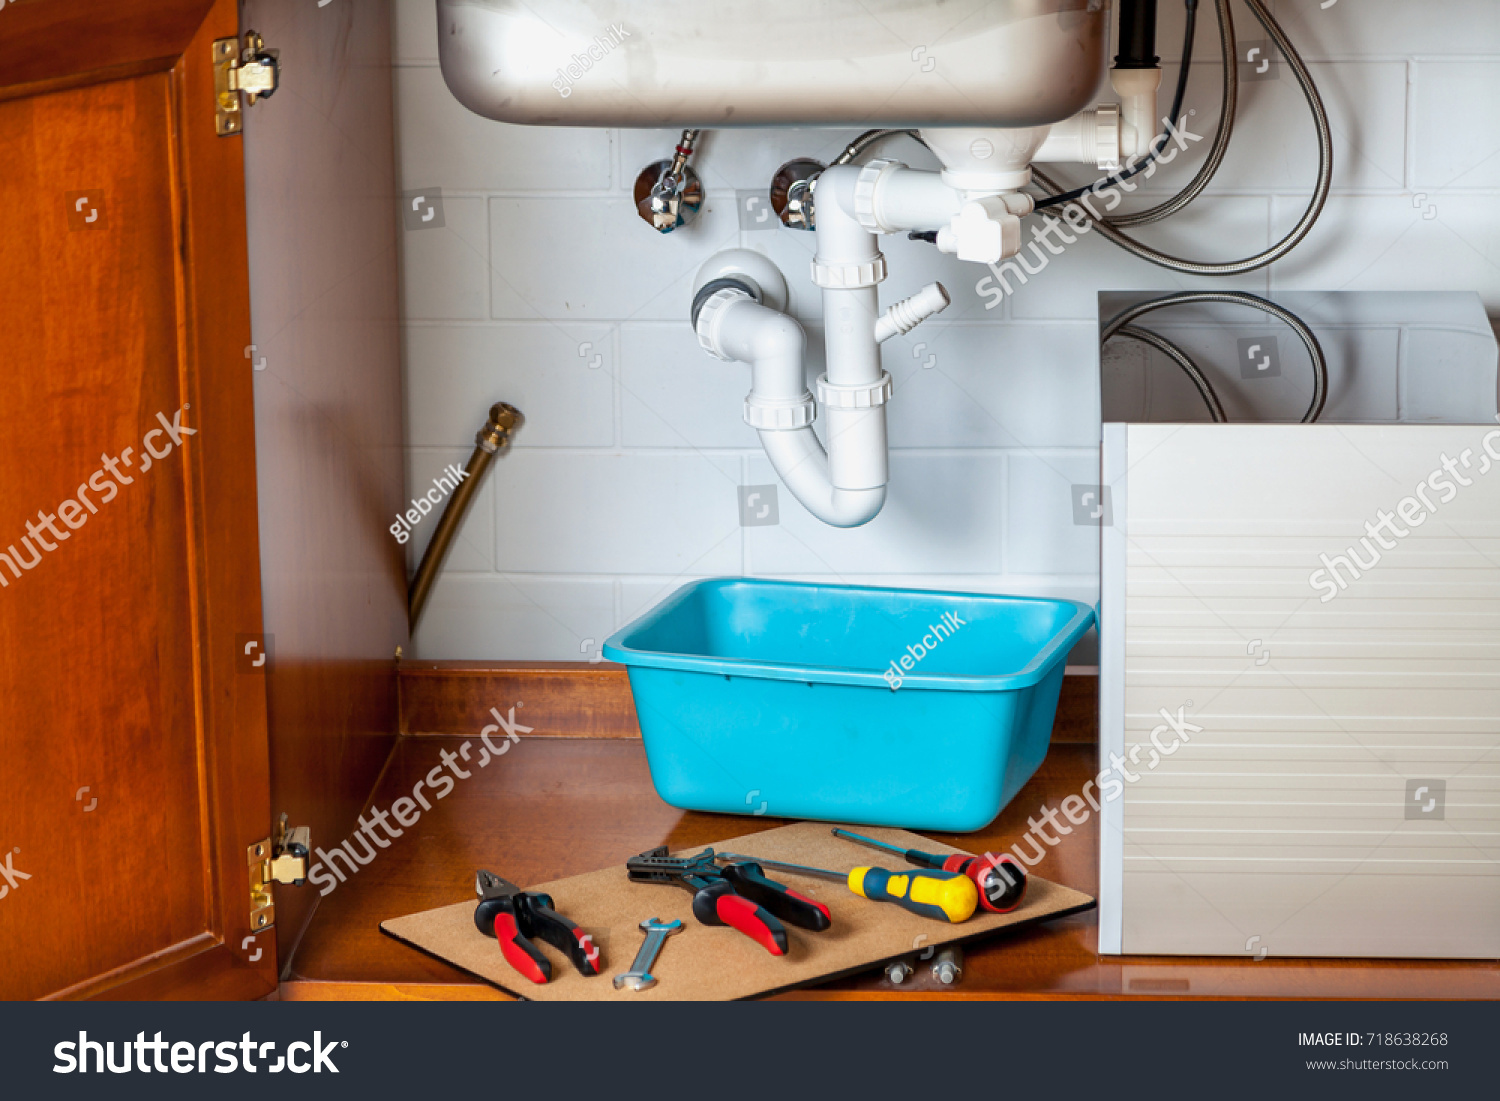 Repair Hydraulic Valve Kitchen Sink Set Stock Photo (Royalty Free ...